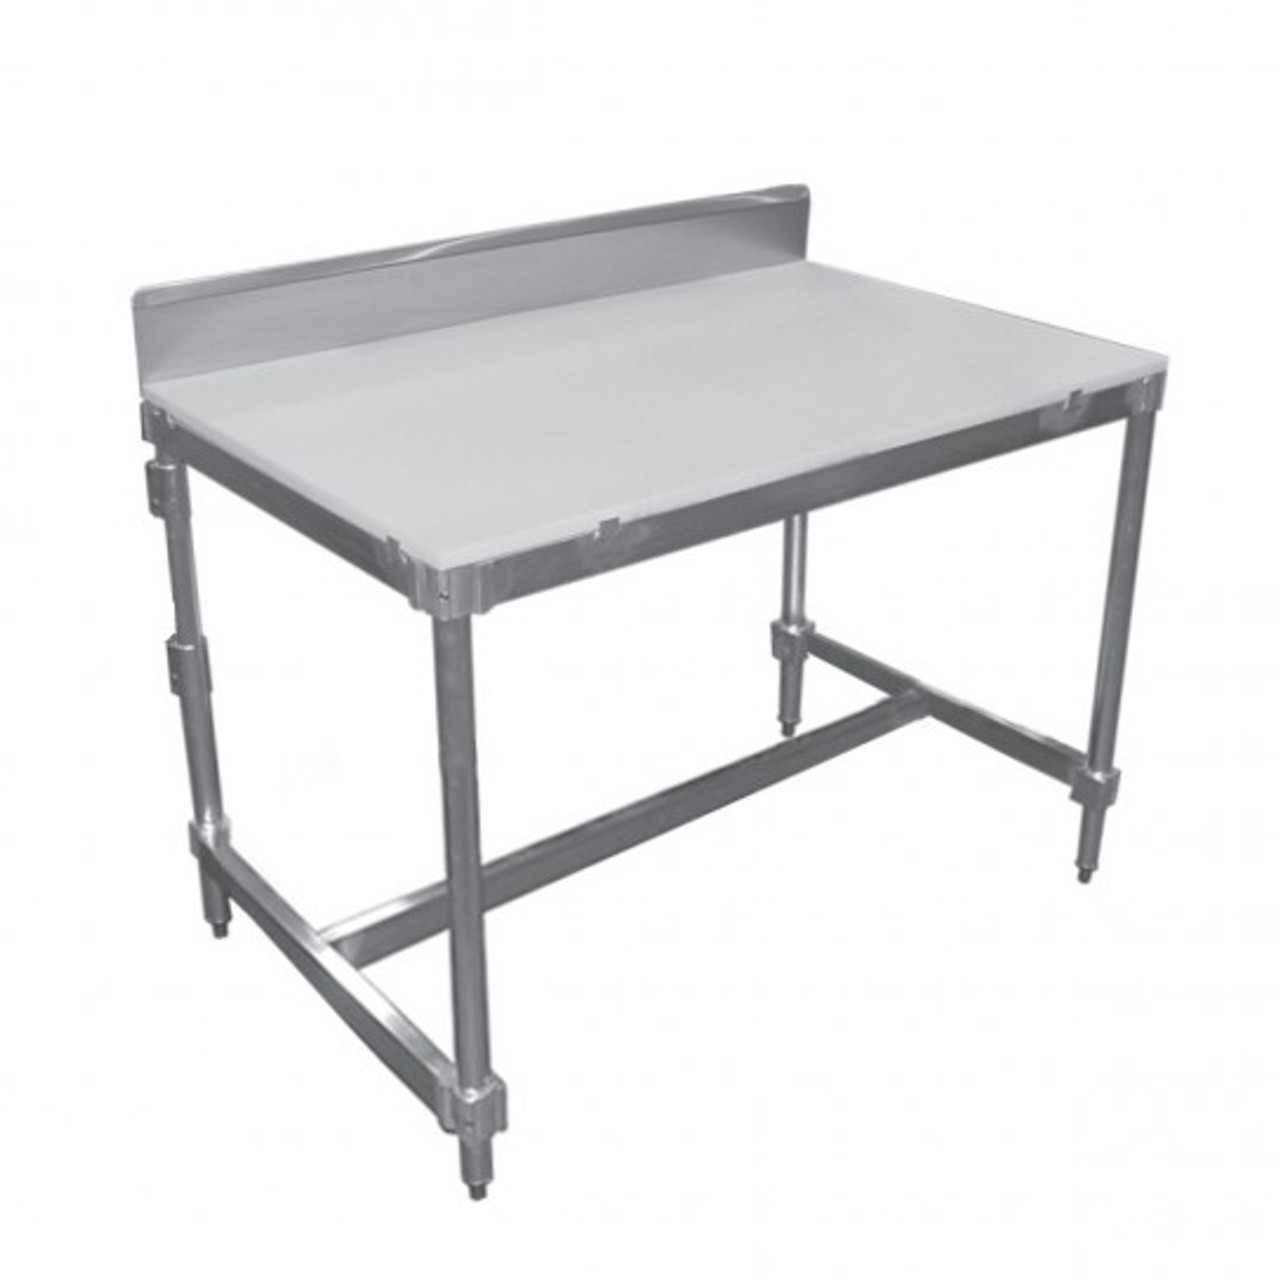 Poly Top Tables with Stainless Steel Backsplash Item length 72 ""